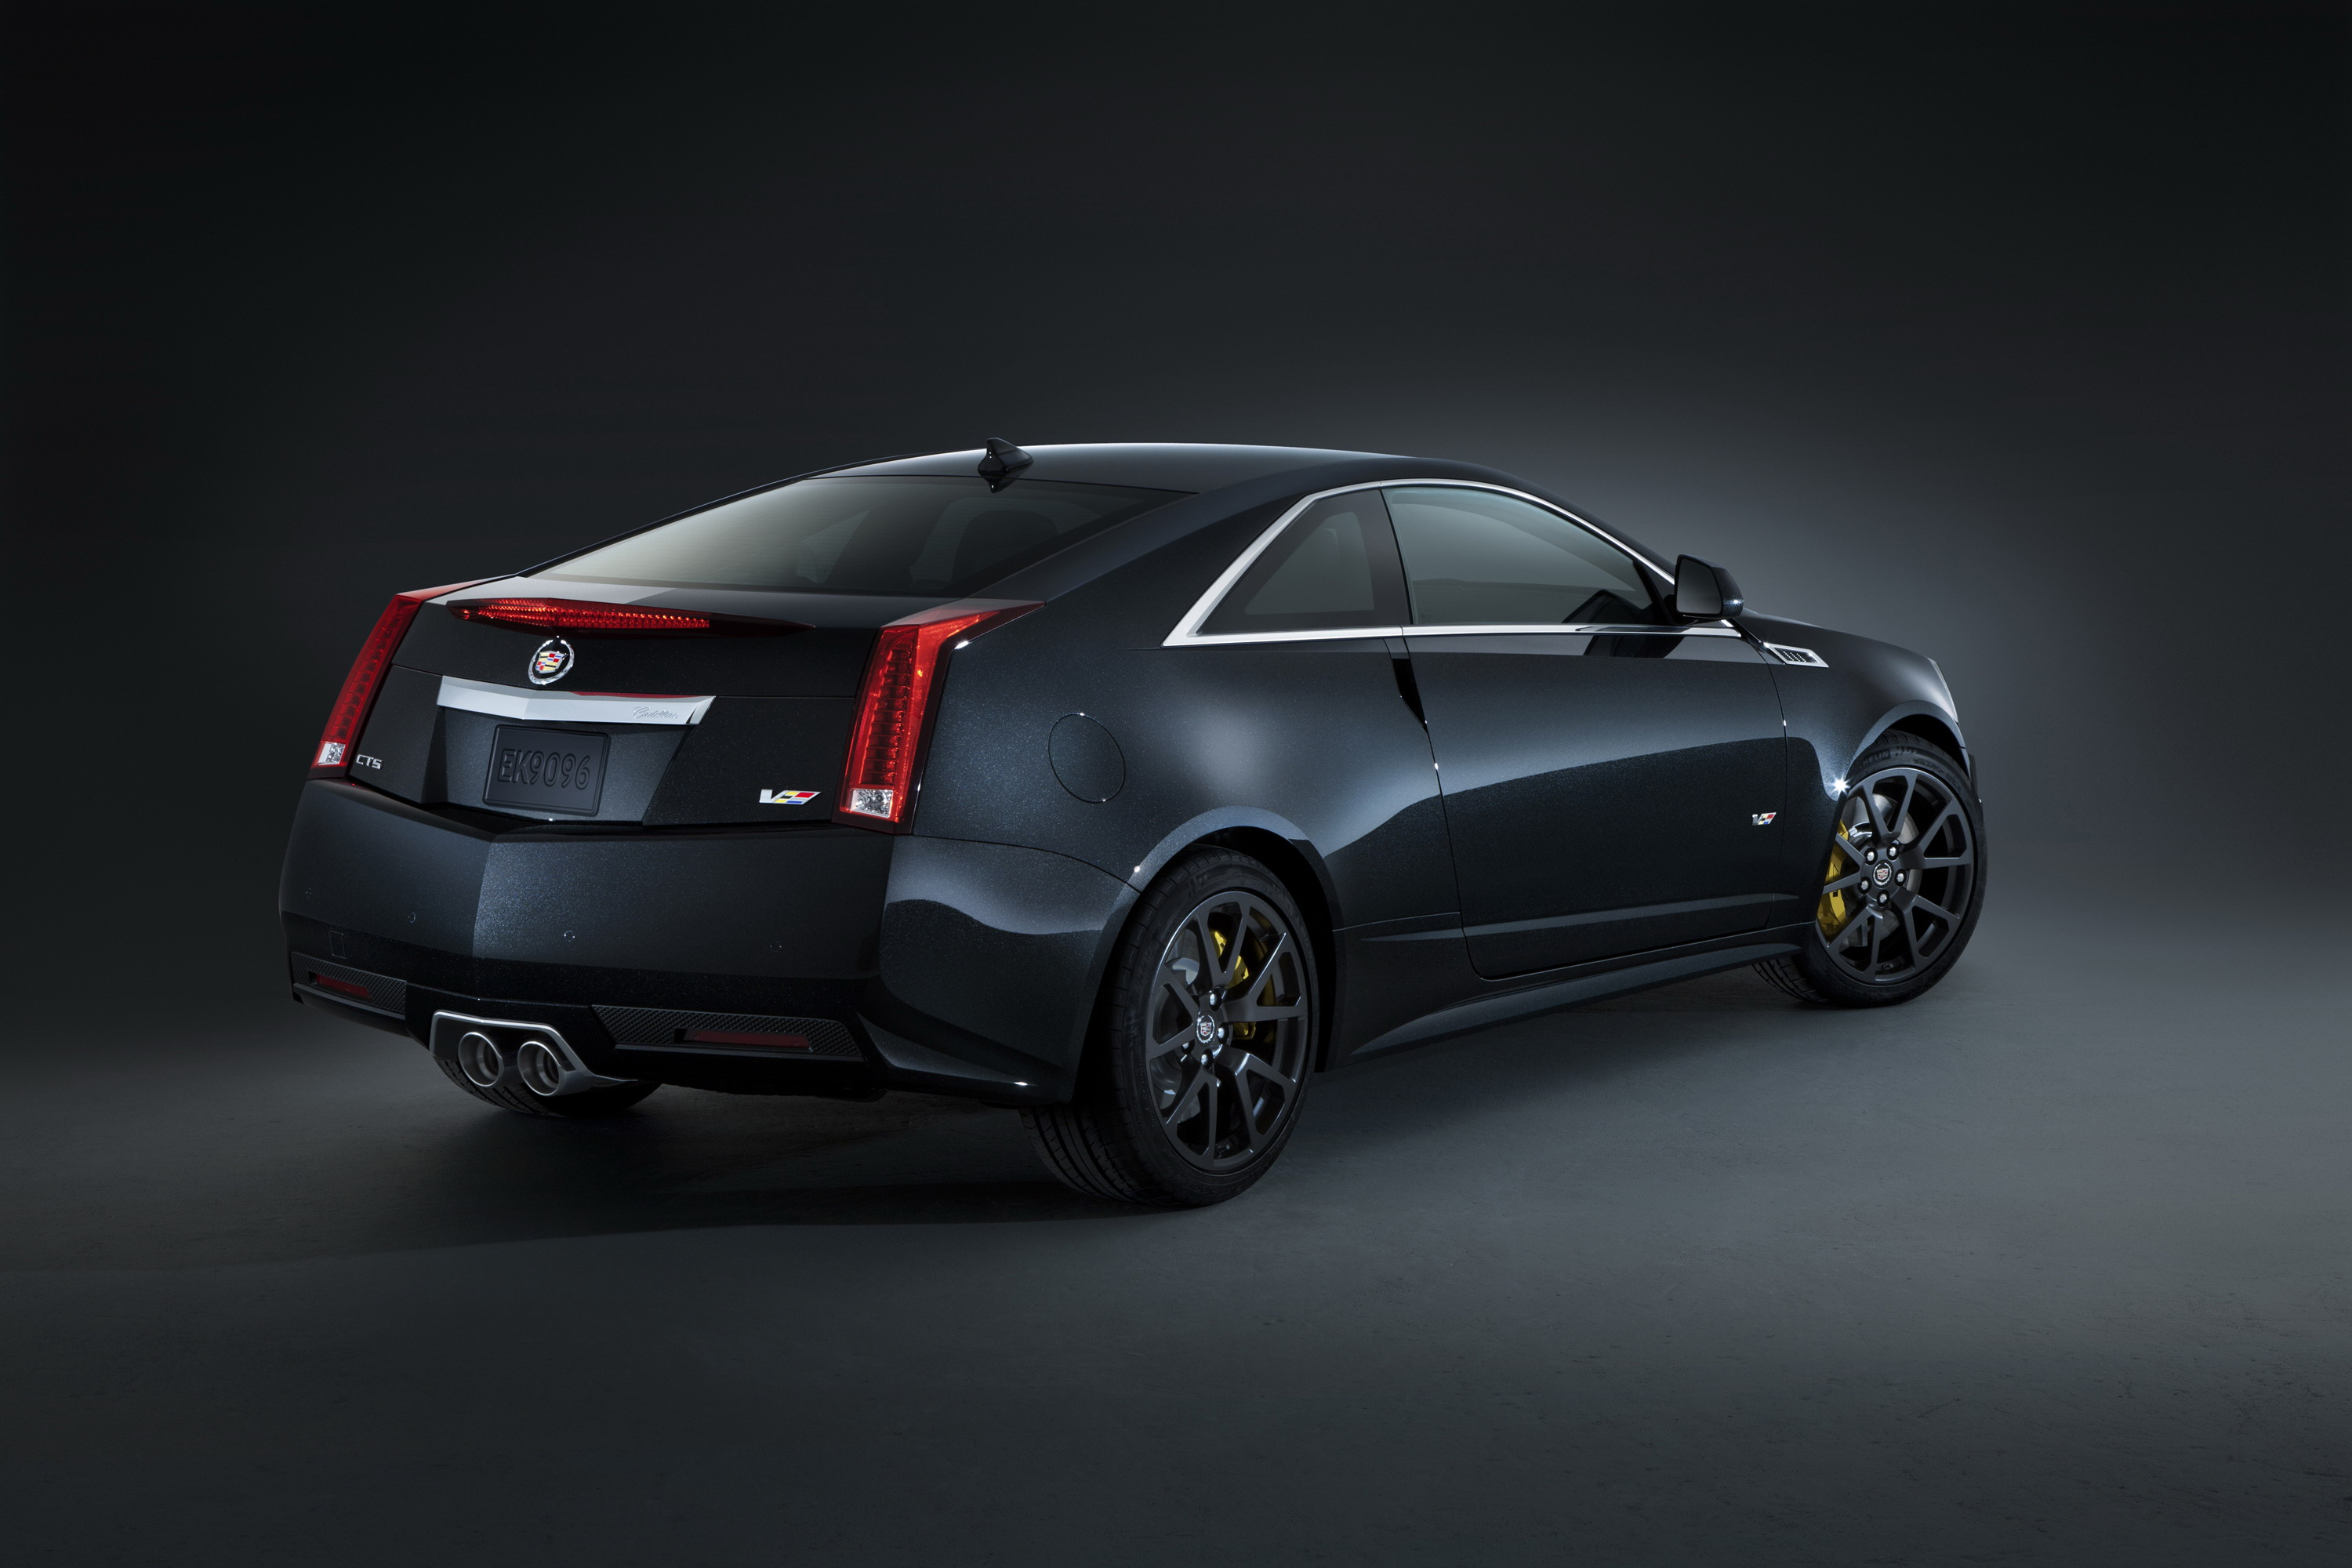 2014 cadillac cts v coupe gallery 545749 top speed. Black Bedroom Furniture Sets. Home Design Ideas